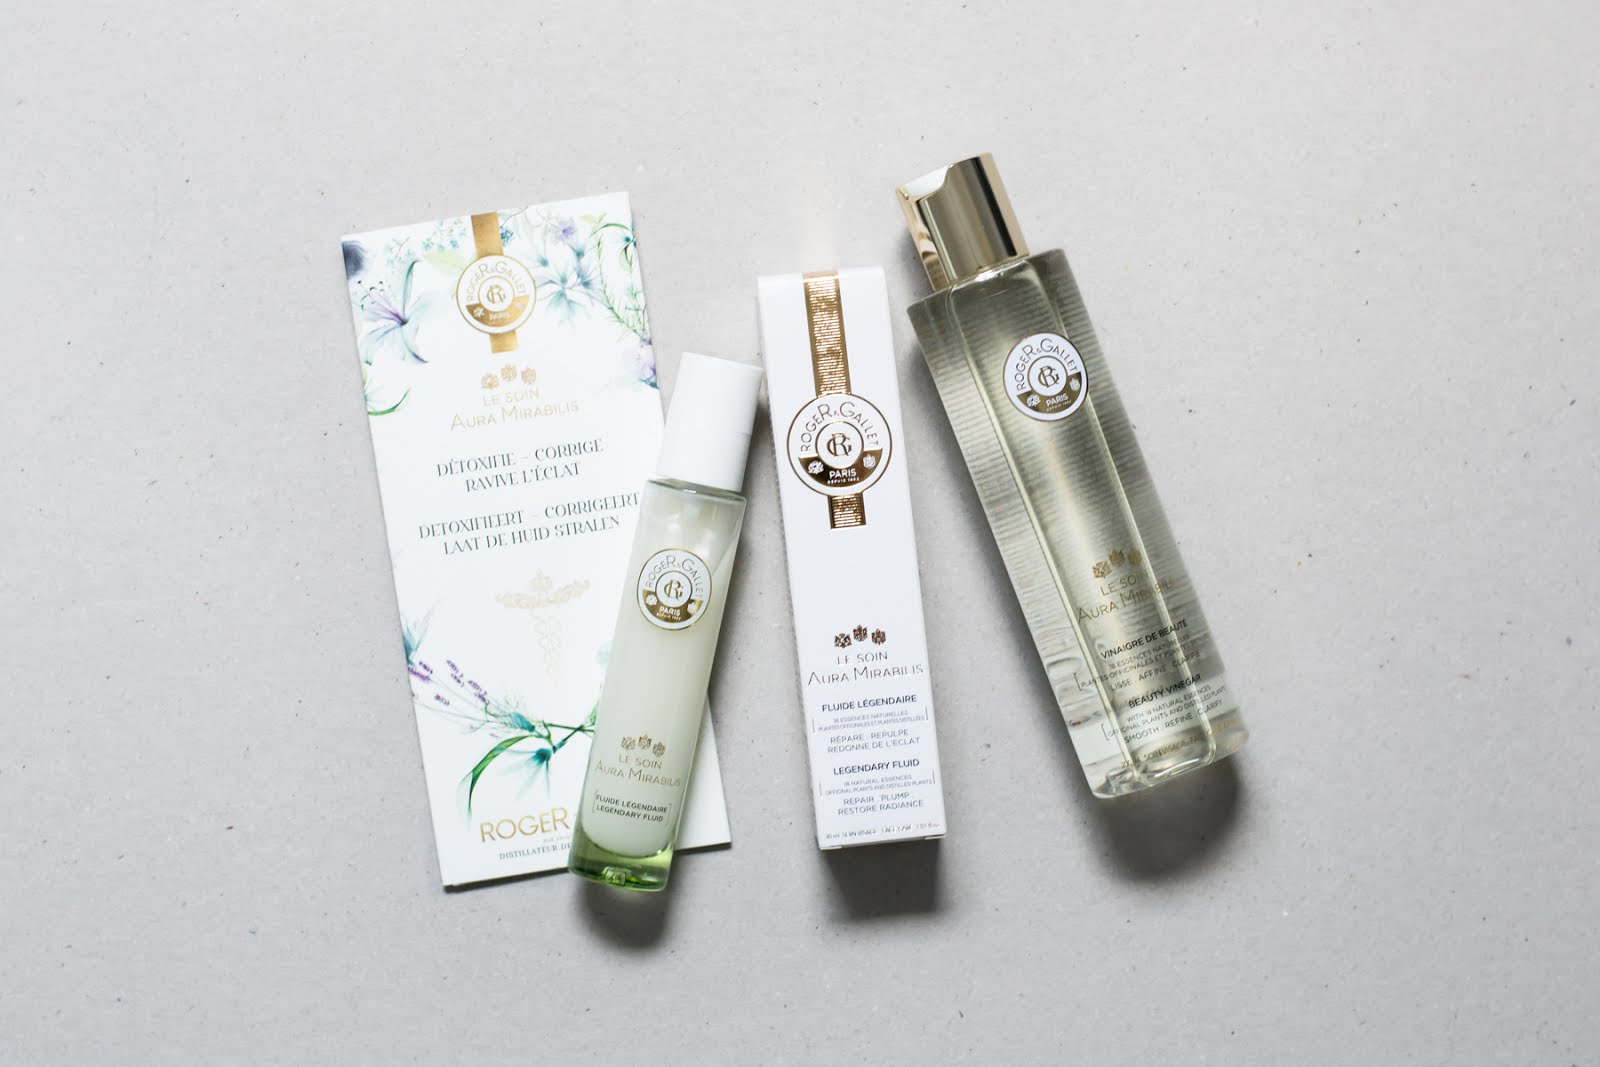 Roger & gallet, le soin aura mirabilis, legendary fluid, beauty vinegar, tonic